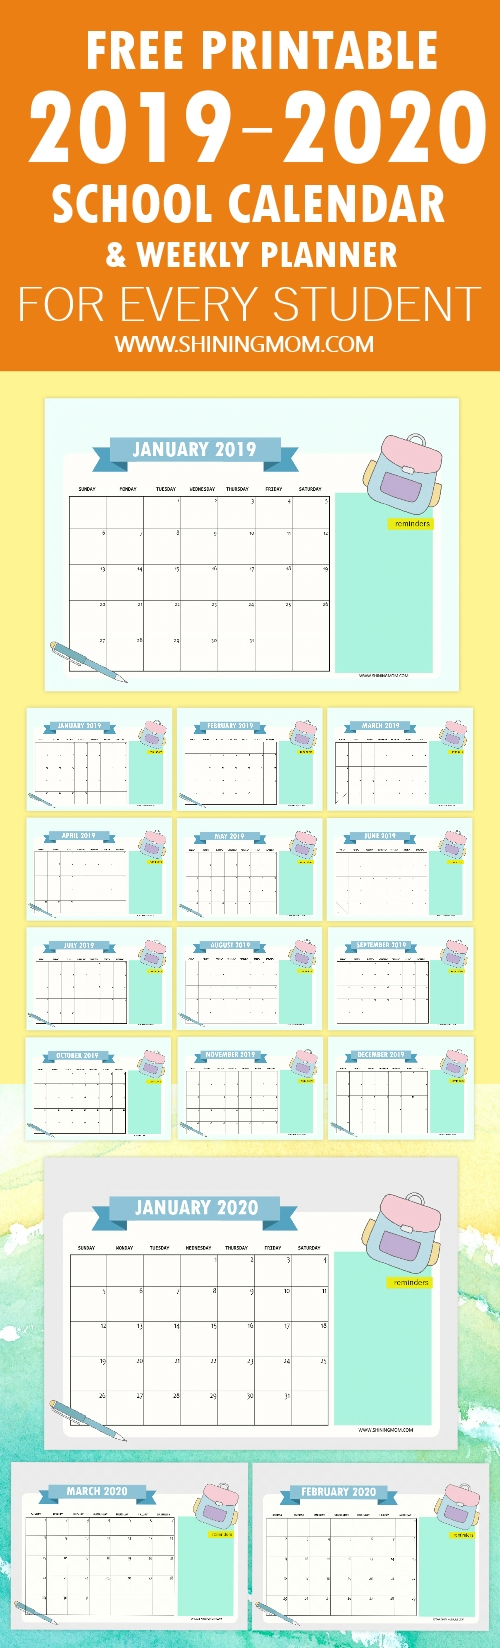 Free School Calendar 2019 – 2020 With Weekly Student Planner